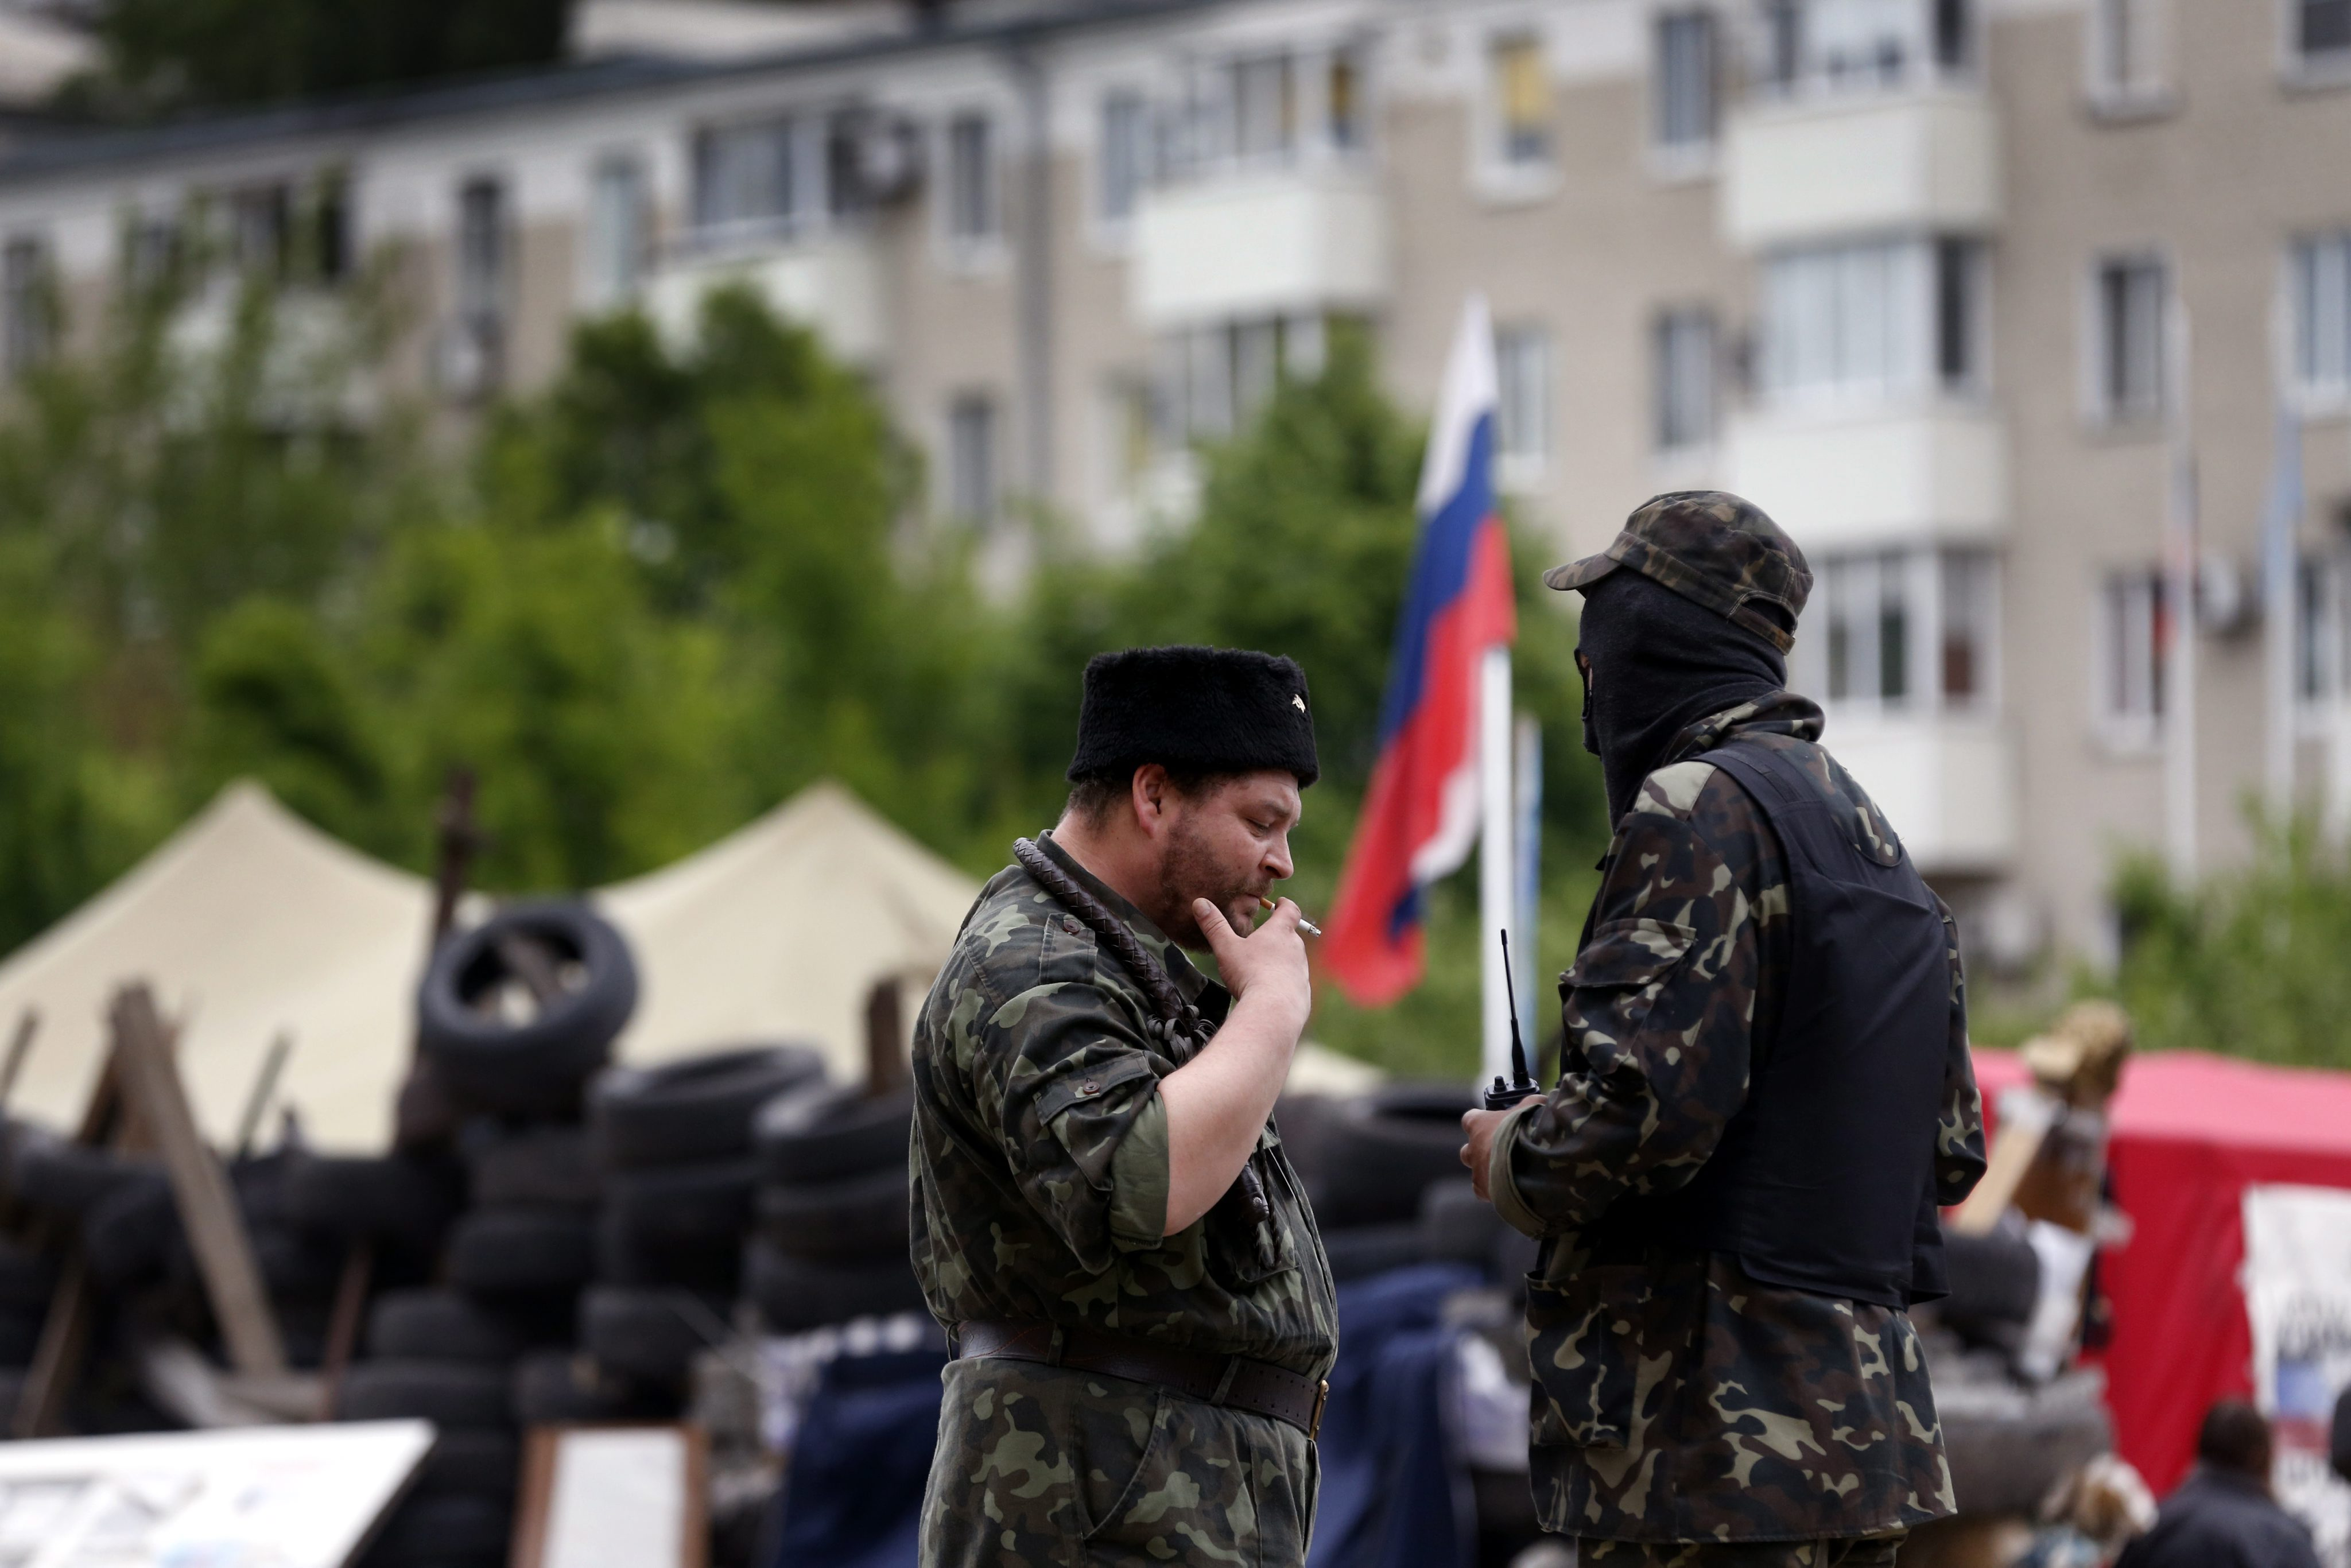 Supporters of the self-declared Donetsk People's Republic stand in front of the occupied regional administration building in Donetsk, Ukraine, May 12, 2014. (Photo: Maxim Shipenkov/Newscom)